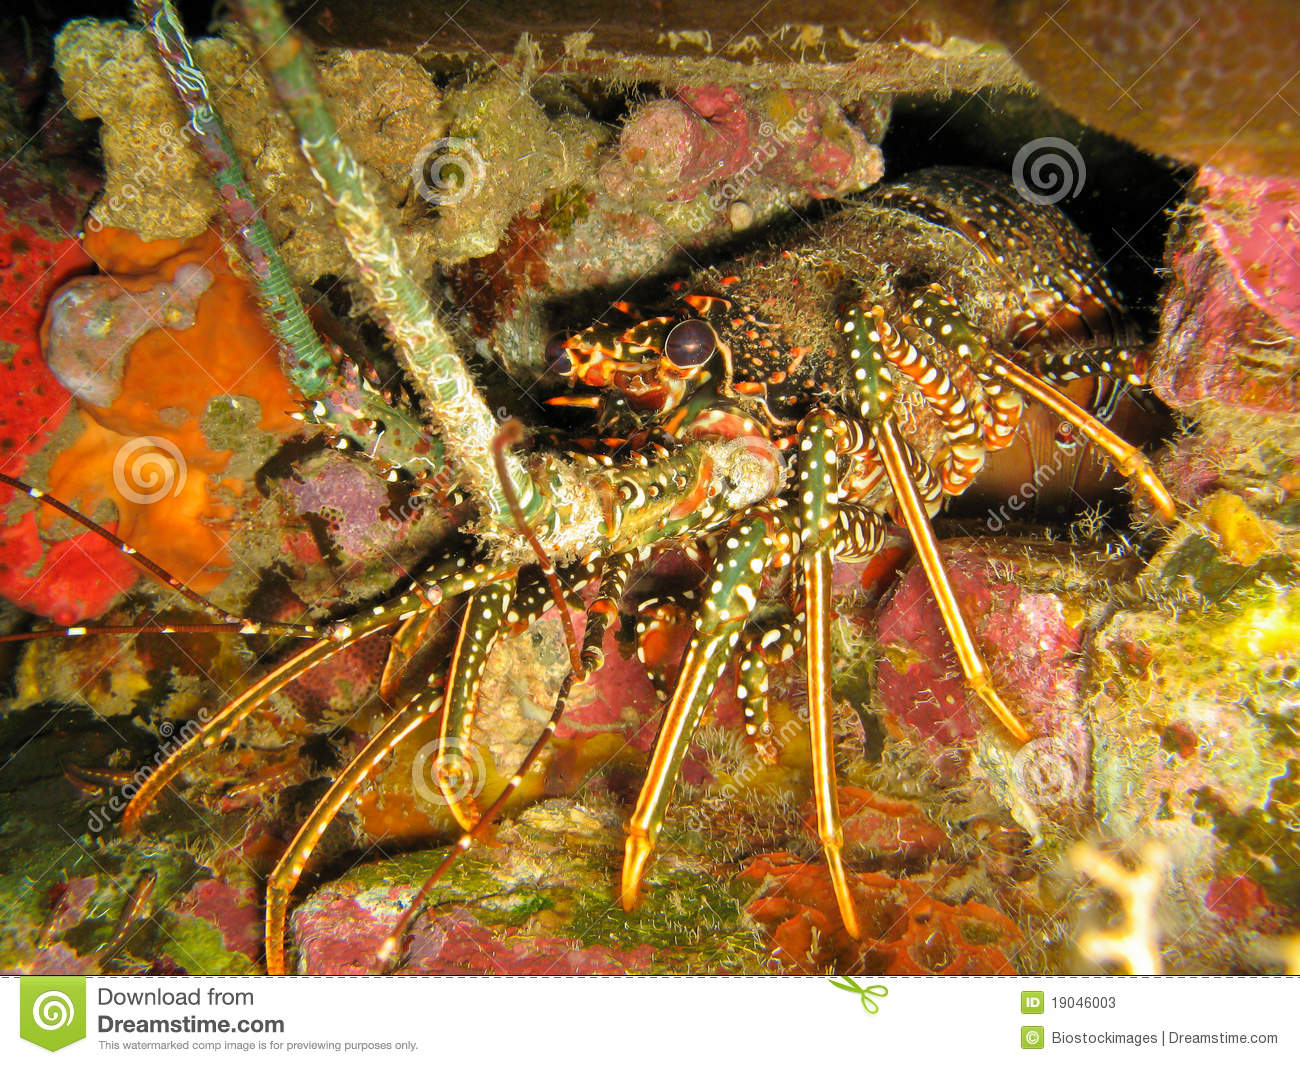 Caribbean Spiny Lobster Panulirus Argus In Den Stock Image - Image: 19046003